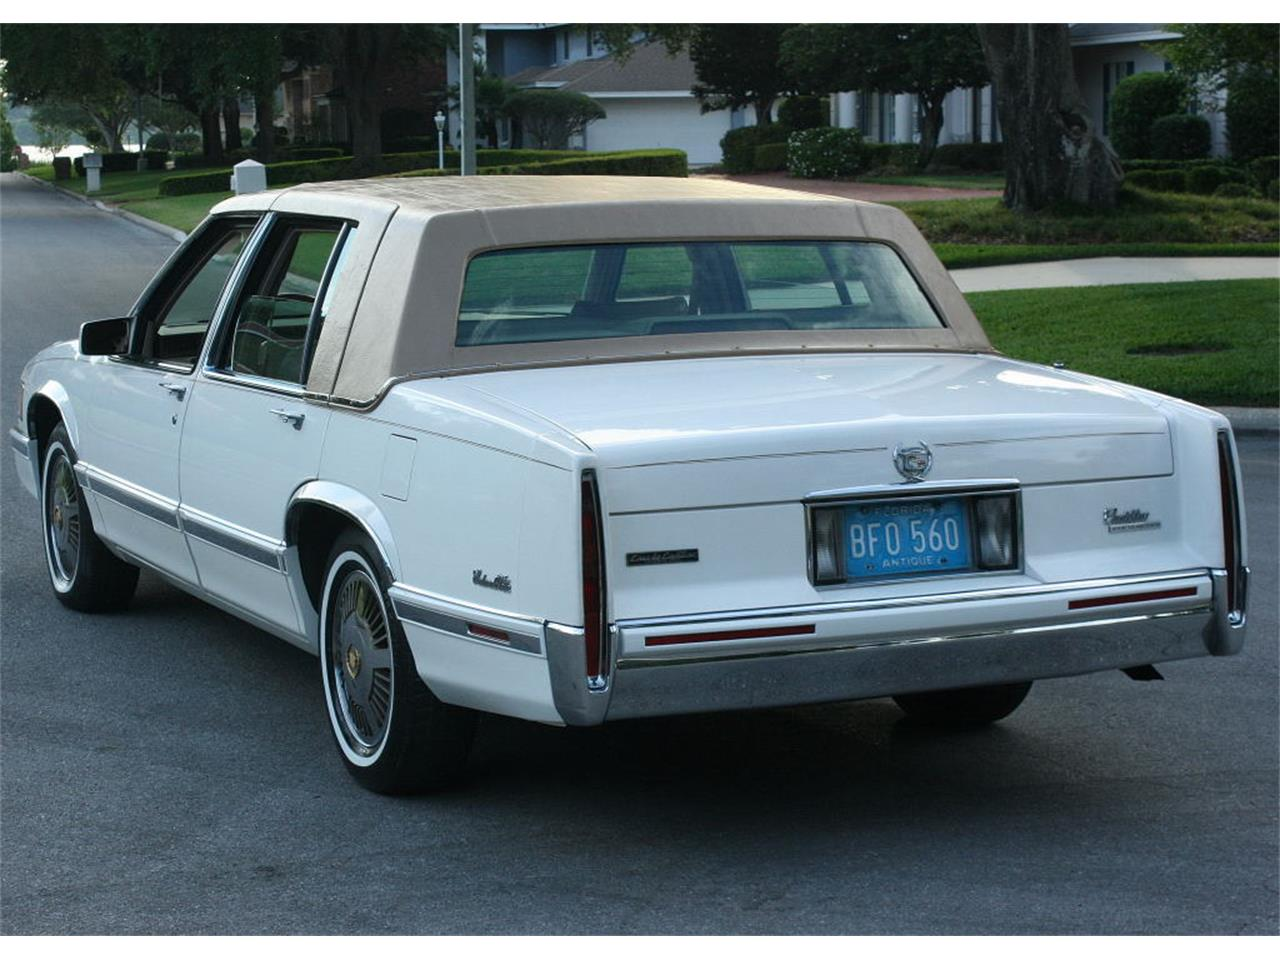 Large Picture of 1991 Cadillac Sedan located in Florida - L5XM